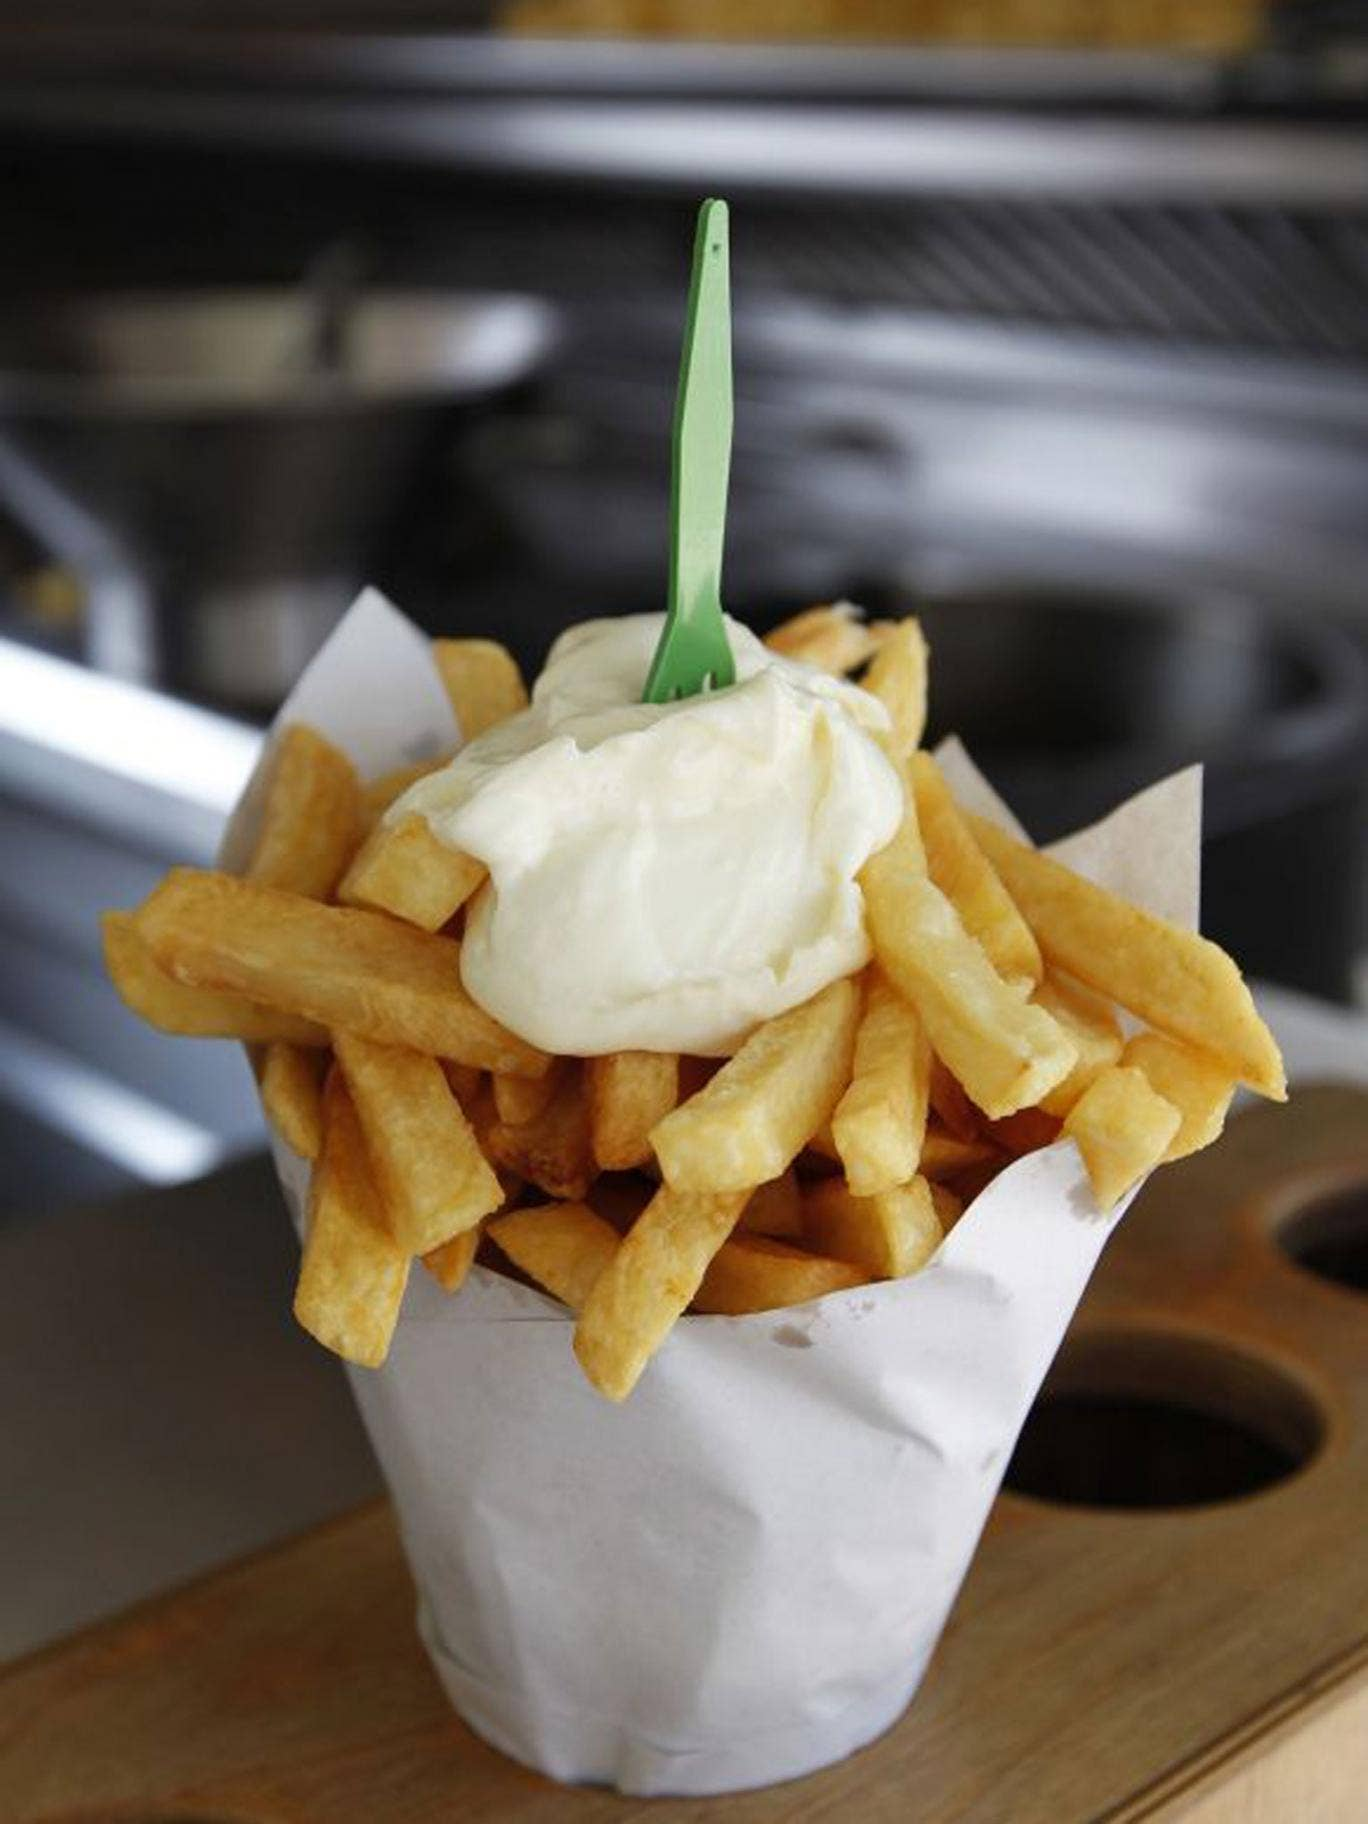 It is the Belgians who have truly embraced the humble frite